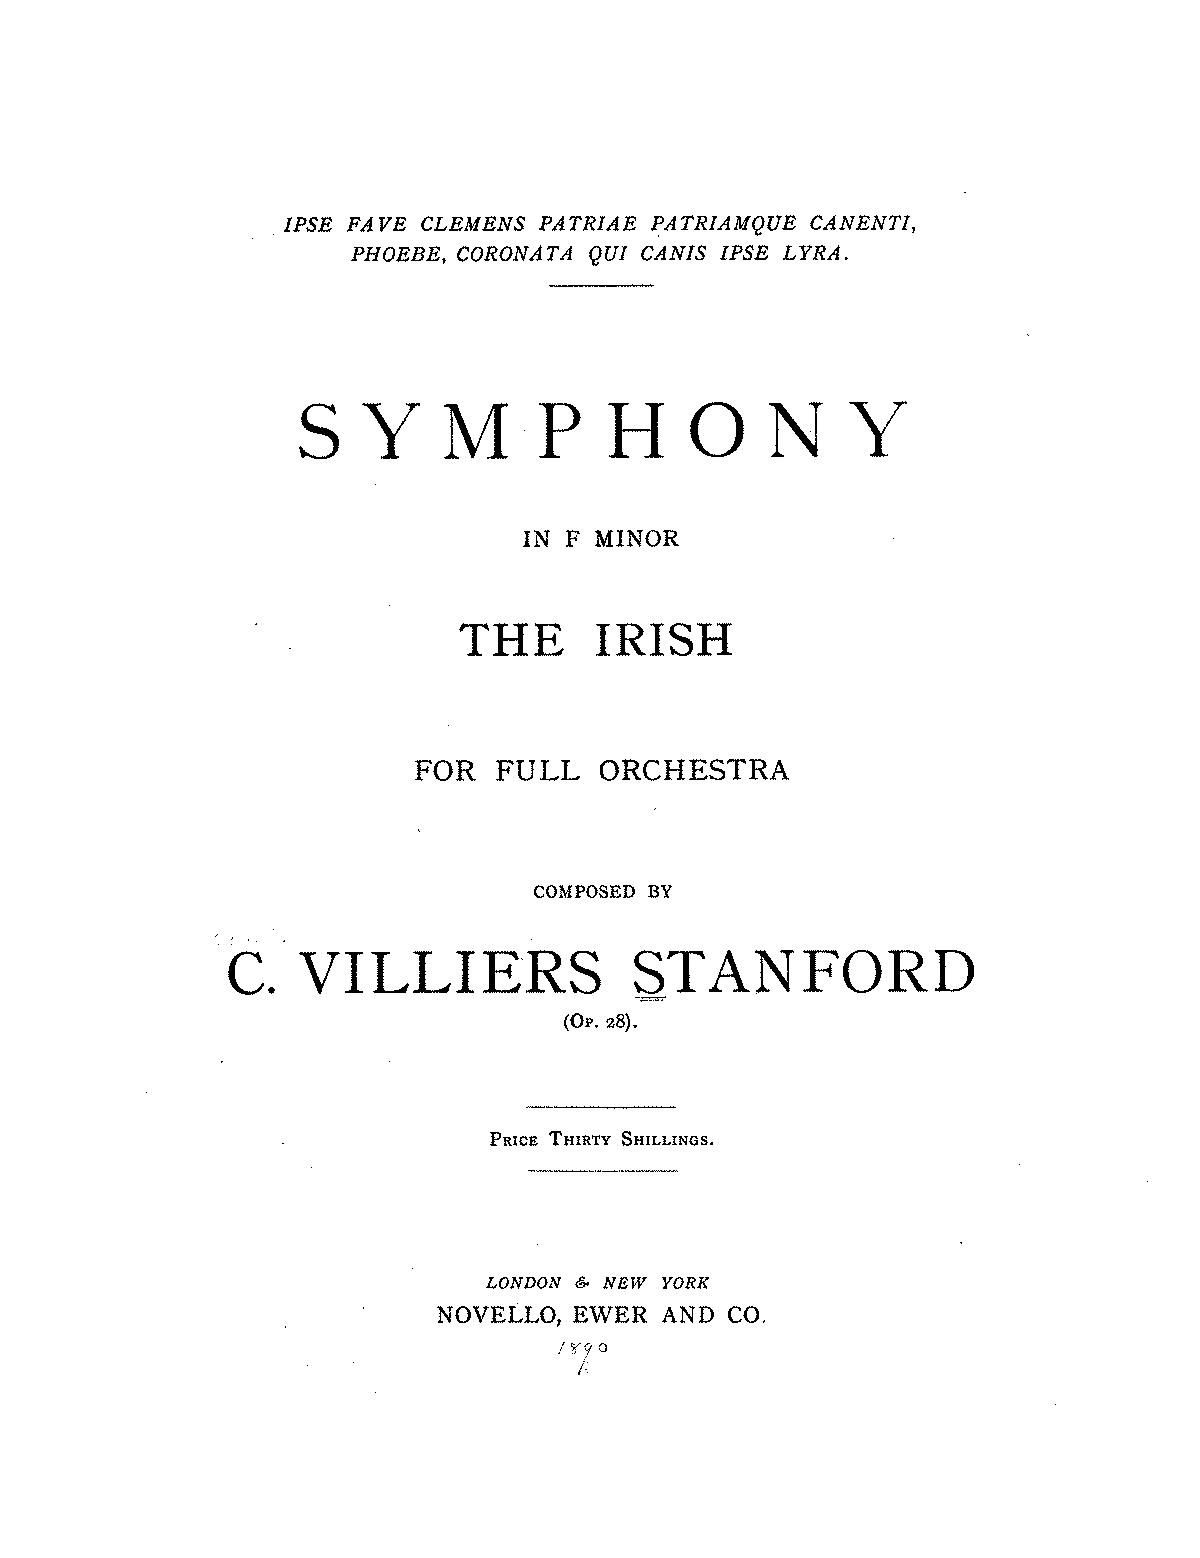 PMLP74119-Stanford - Symphony No 3 in f 'The Irish' Op 28 - 1 - Allegro moderato.pdf